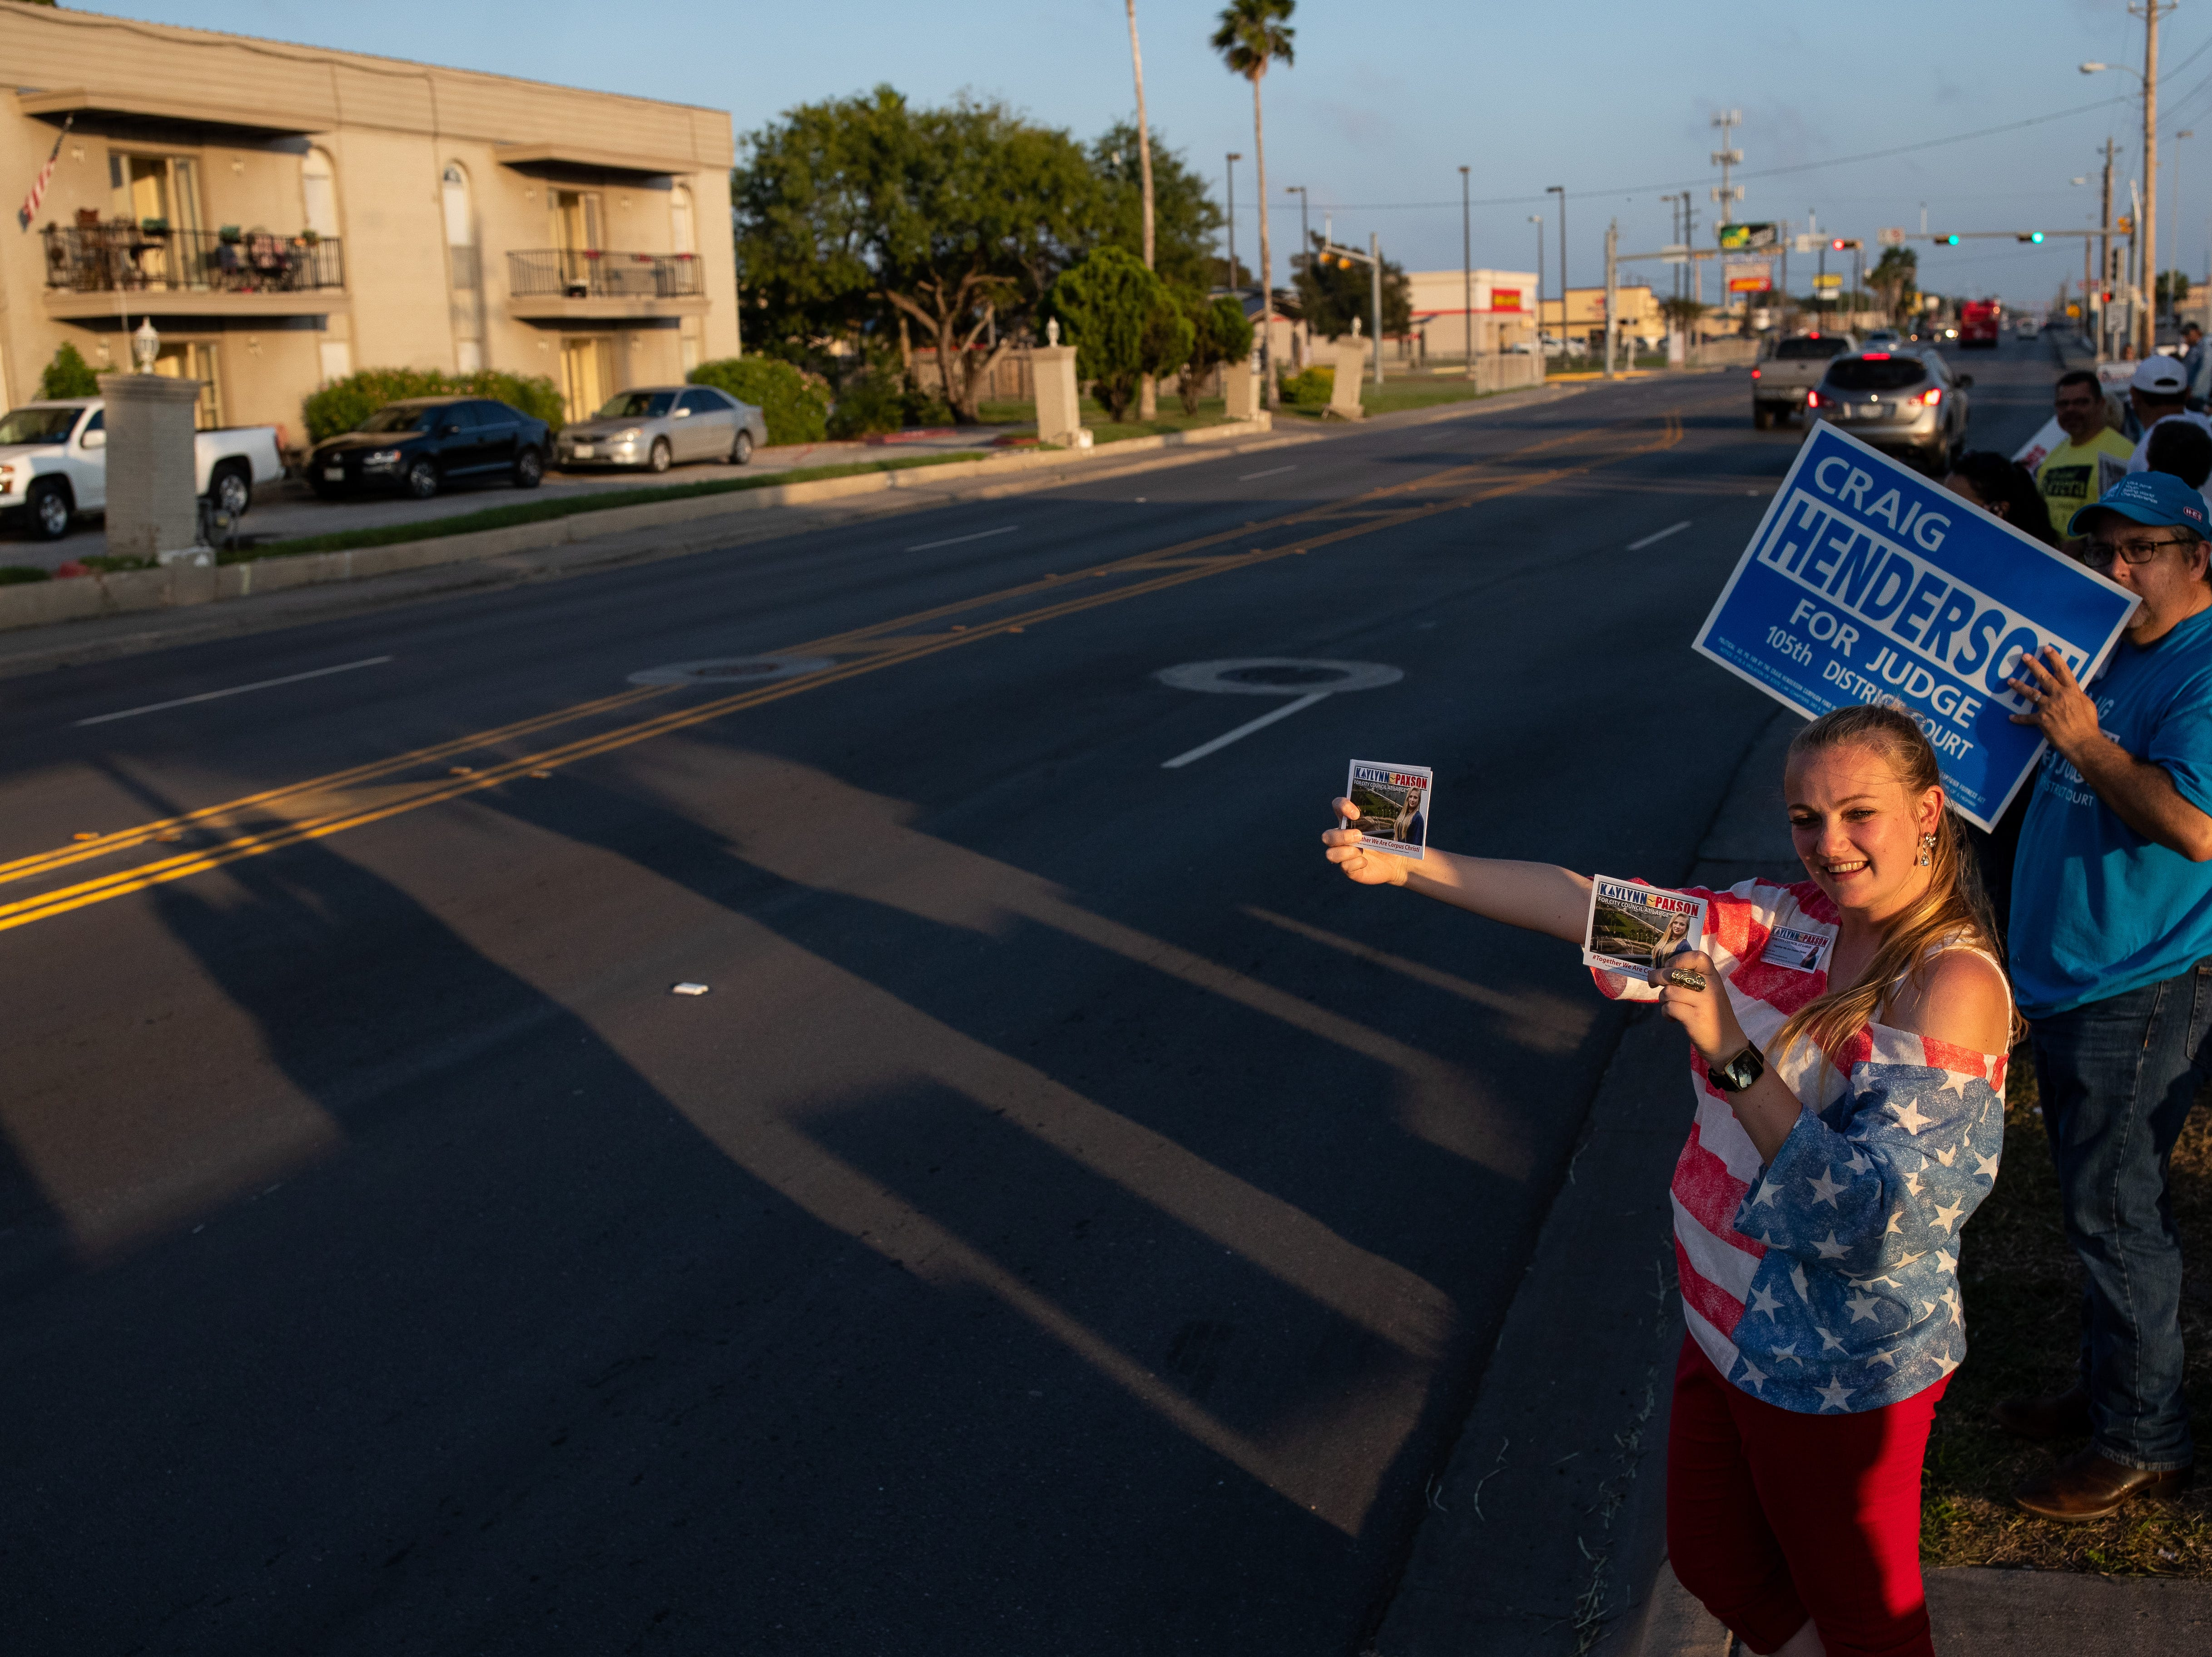 Candidate for Corpus Christi's City Council At Large seat, Kaylynn Paxson campaigns outside the Deaf and Hard of Hearing Center during election day on Tuesday, Nov. 6, 2018.